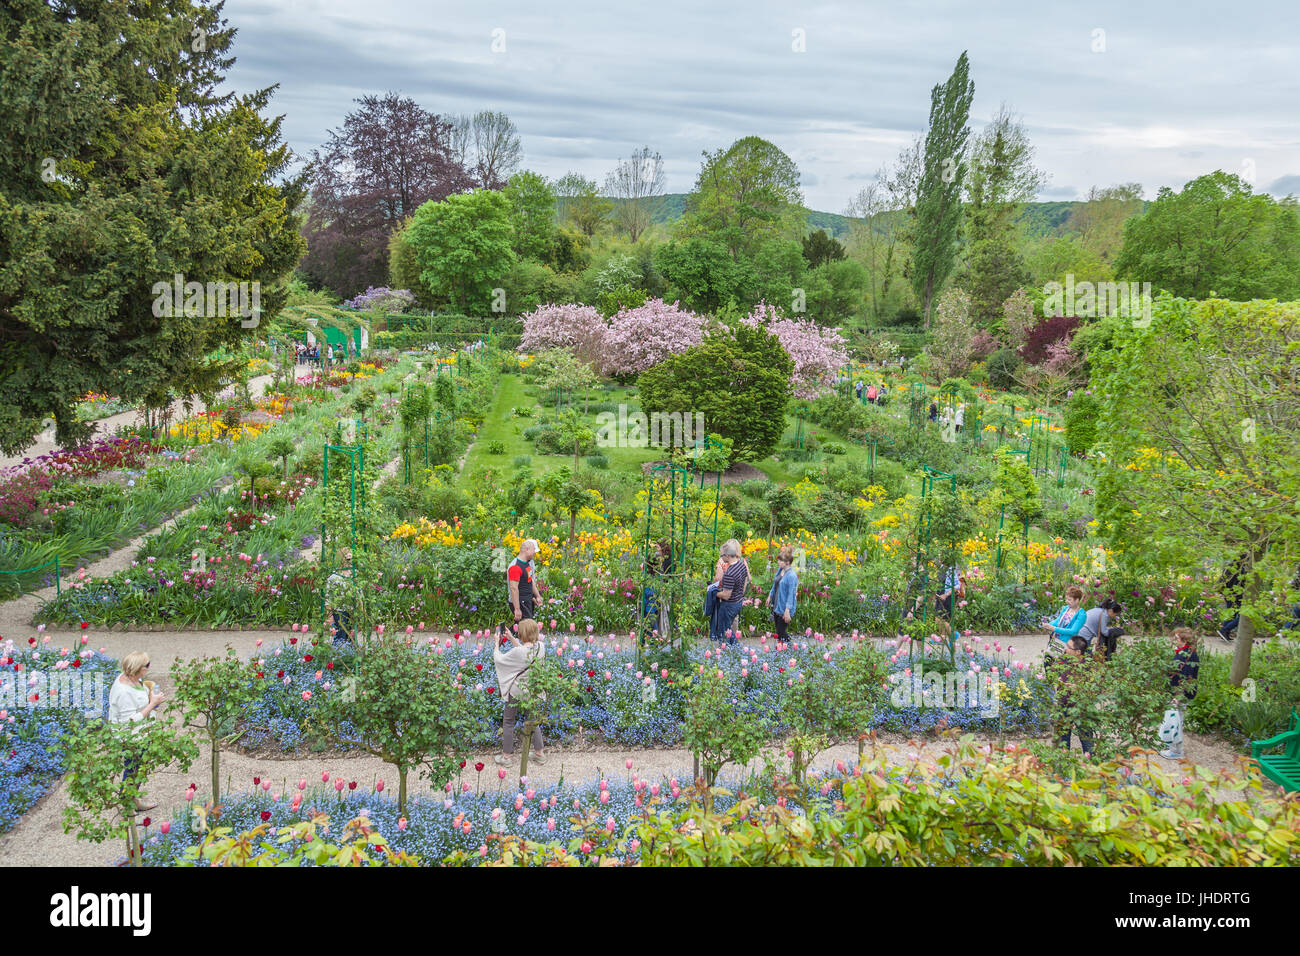 Stock Photo   Tourists Visit In Claude Monetu0027s Gardens In Village Giverny,  Located 80 Km (50 Mi) From Paris, France Claude Monetu0027s Gardens In Village  ...